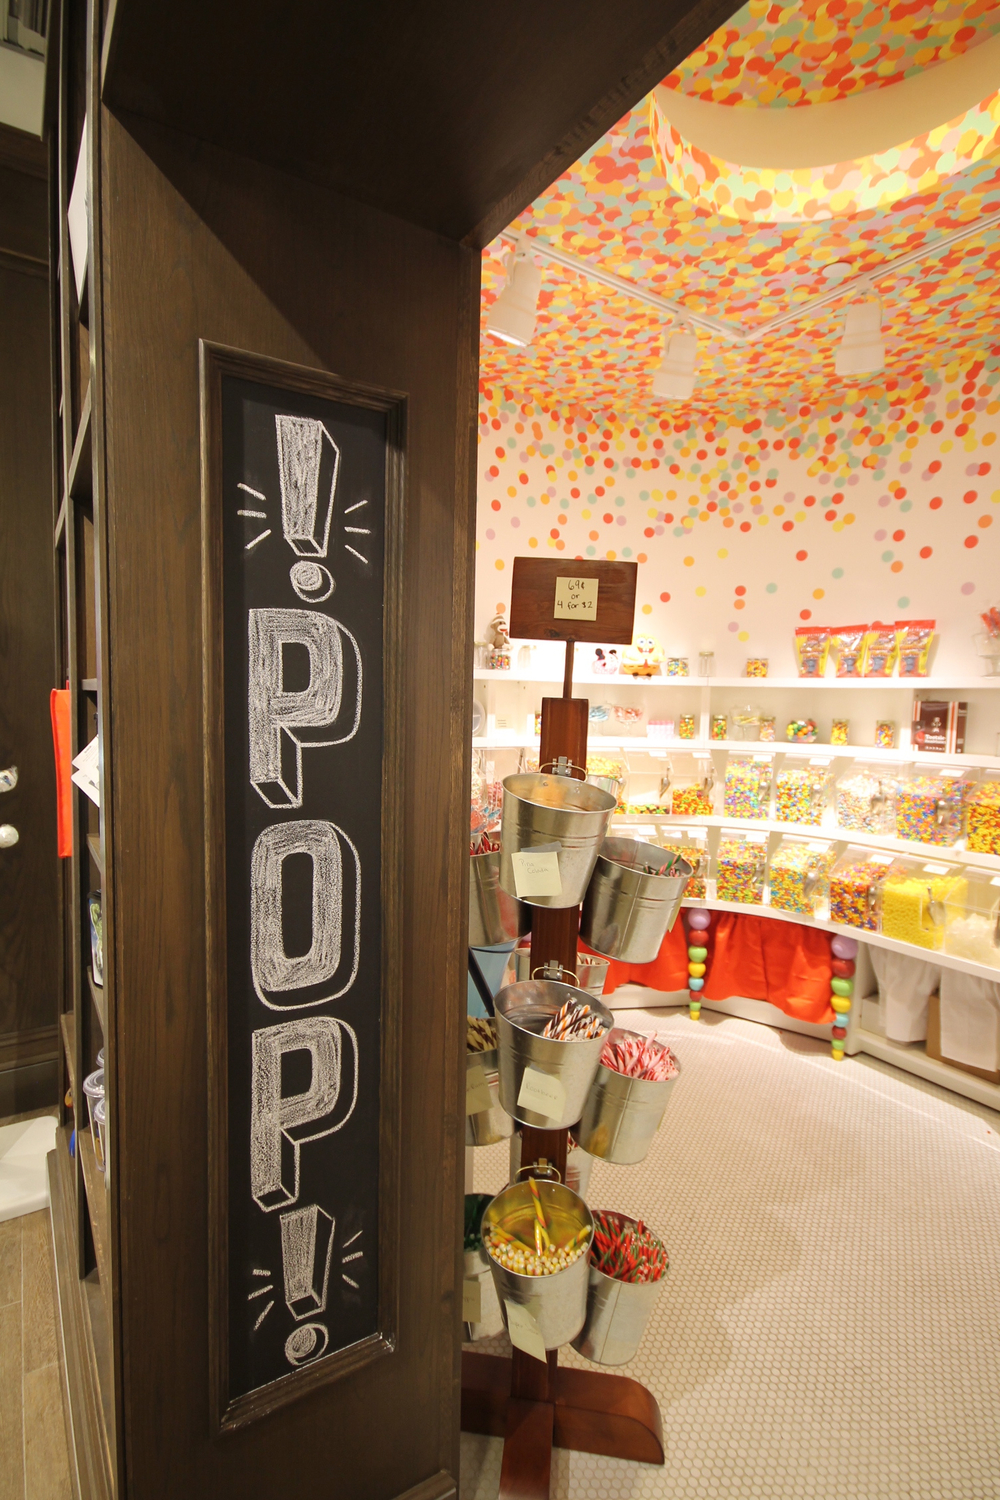 Lolli and Pops, Fashion Outlets of Chicago, Rosemont IL, August 2013